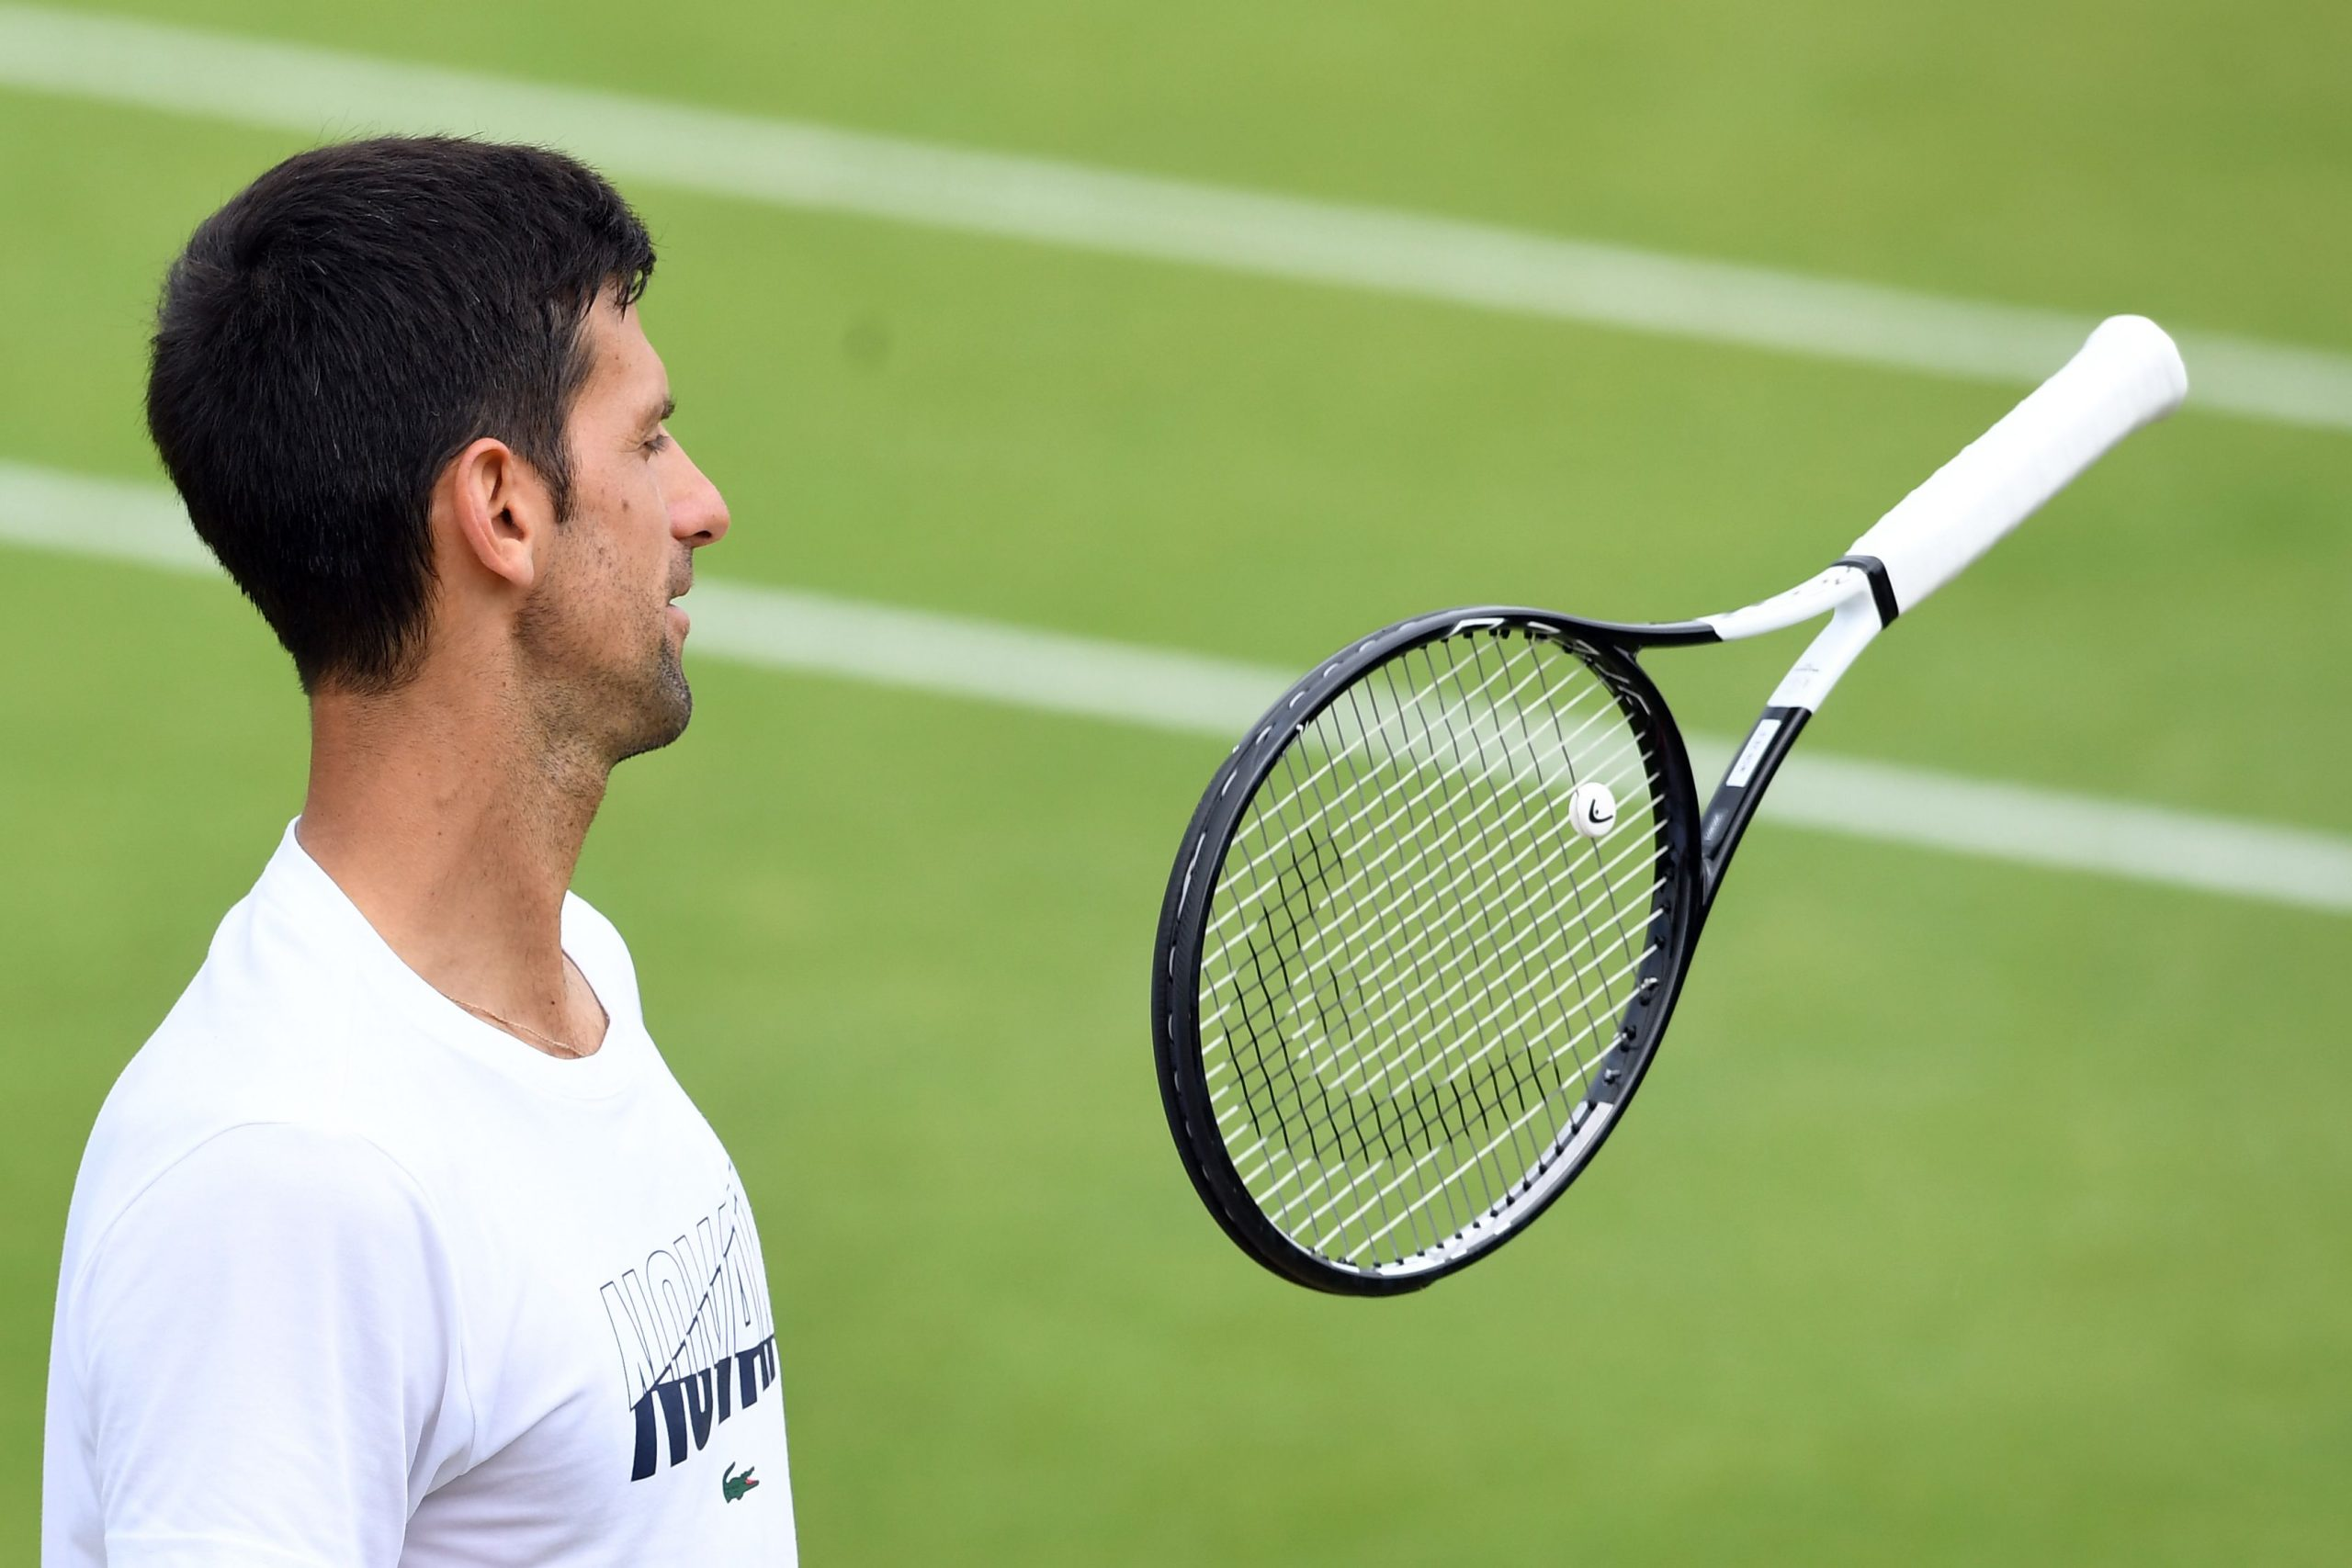 World No.1 Novak Djokovic, unlike his father, was full on praise for his fellow ATP star Roger Federer.